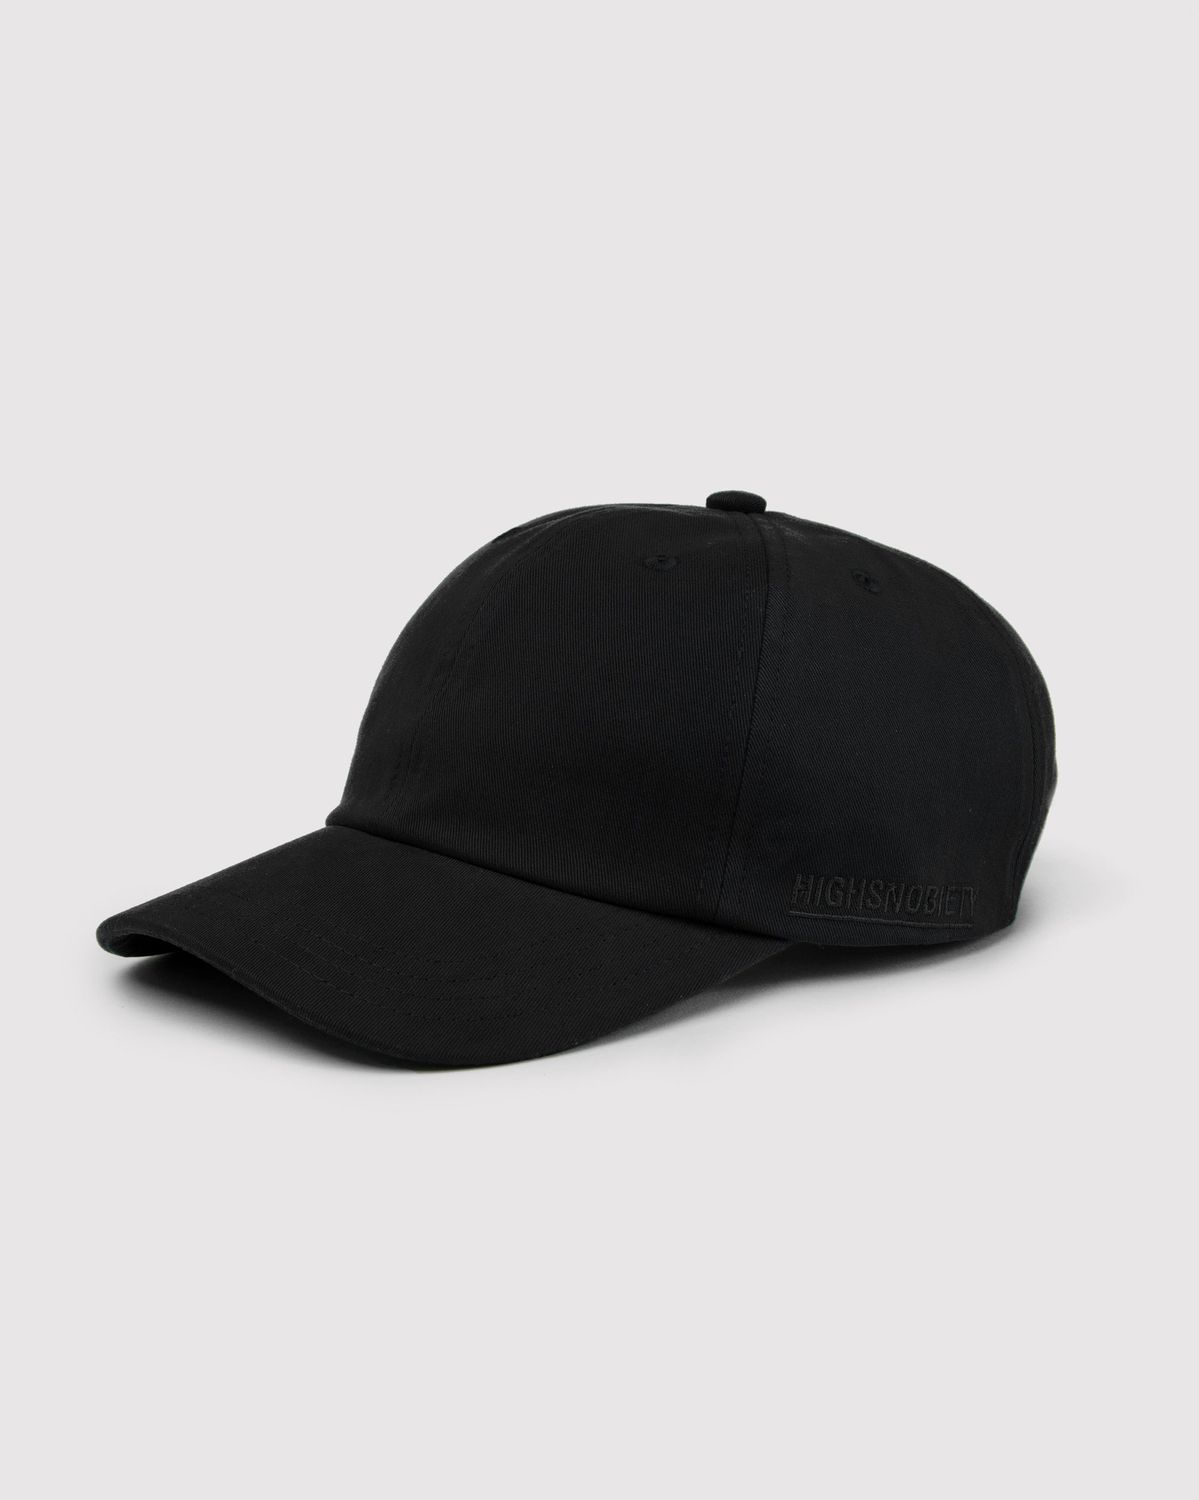 Highsnobiety Staples - Cap Black - Image 1